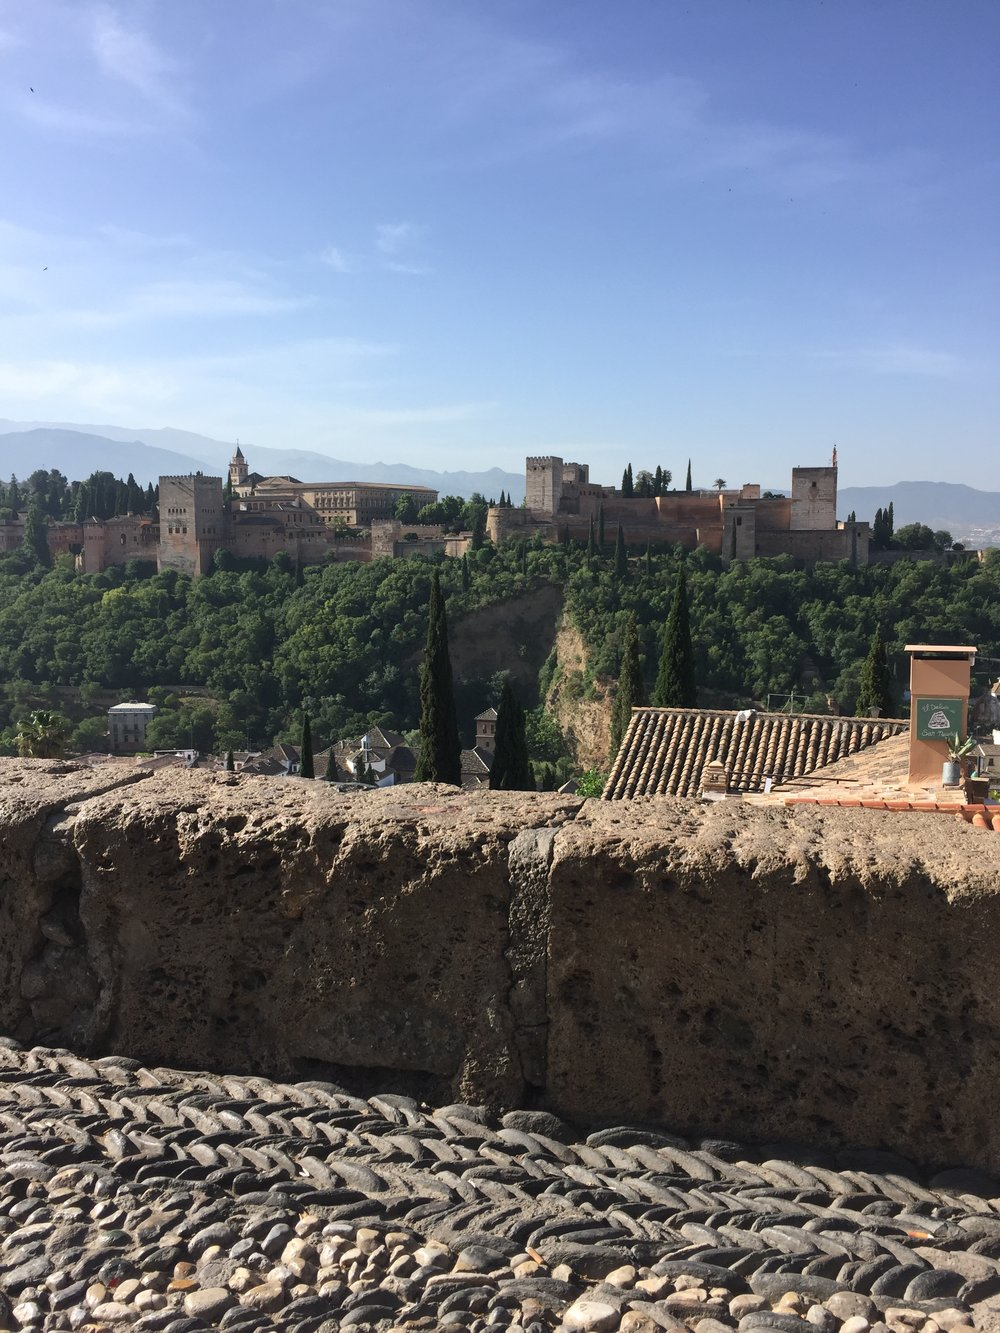 A view of the Alhambra from the San Nicolas Viewpoint